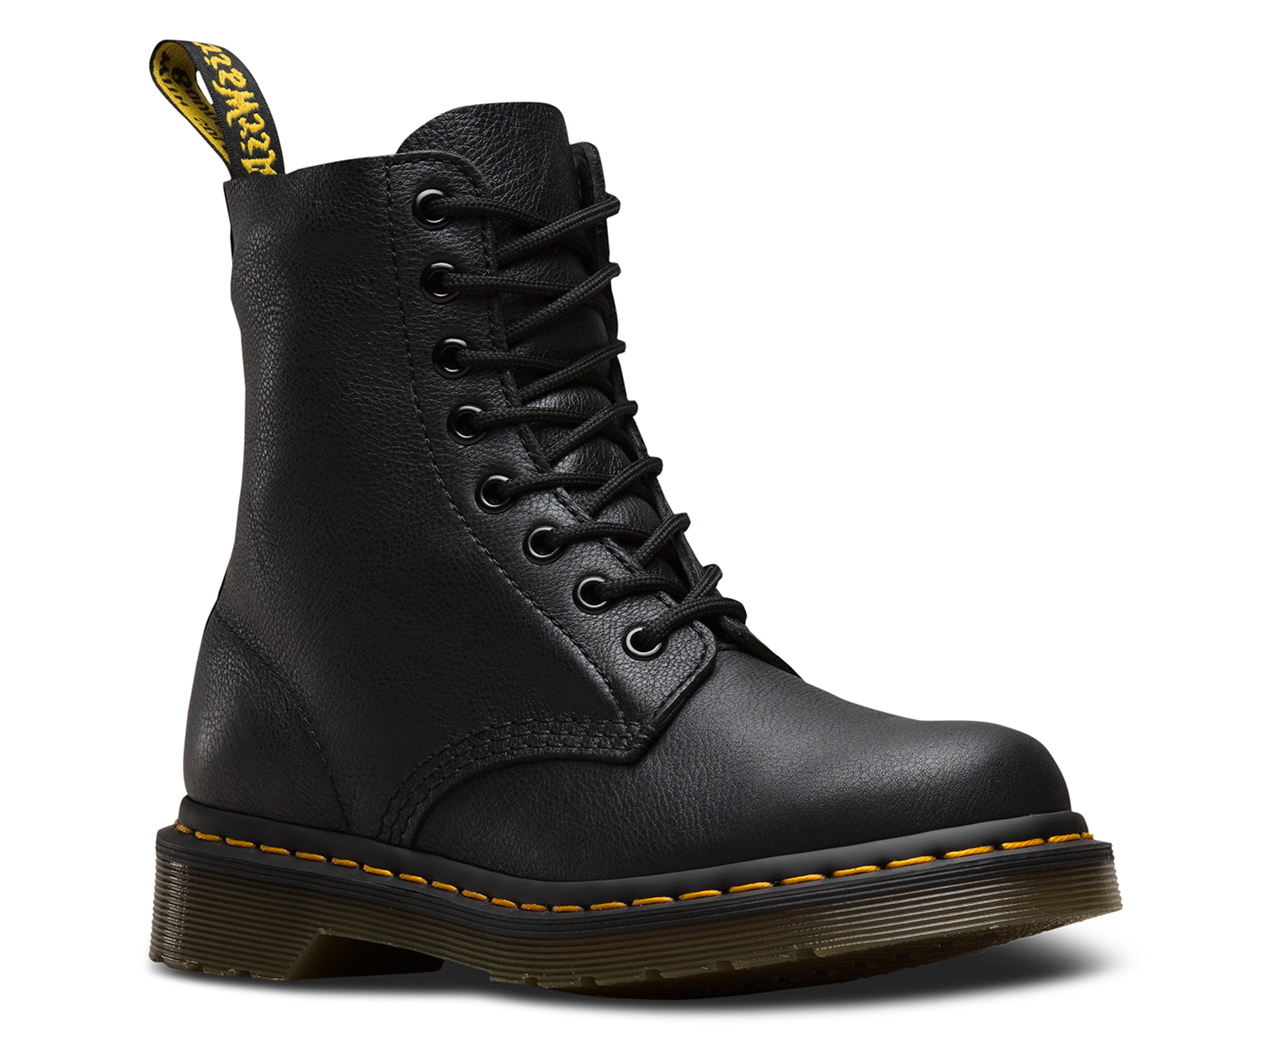 Dr. Martens 1460 PASCAL 8 EYE BOOT - Lace-up boots - dark brown virginia jYOr8Ufkj6